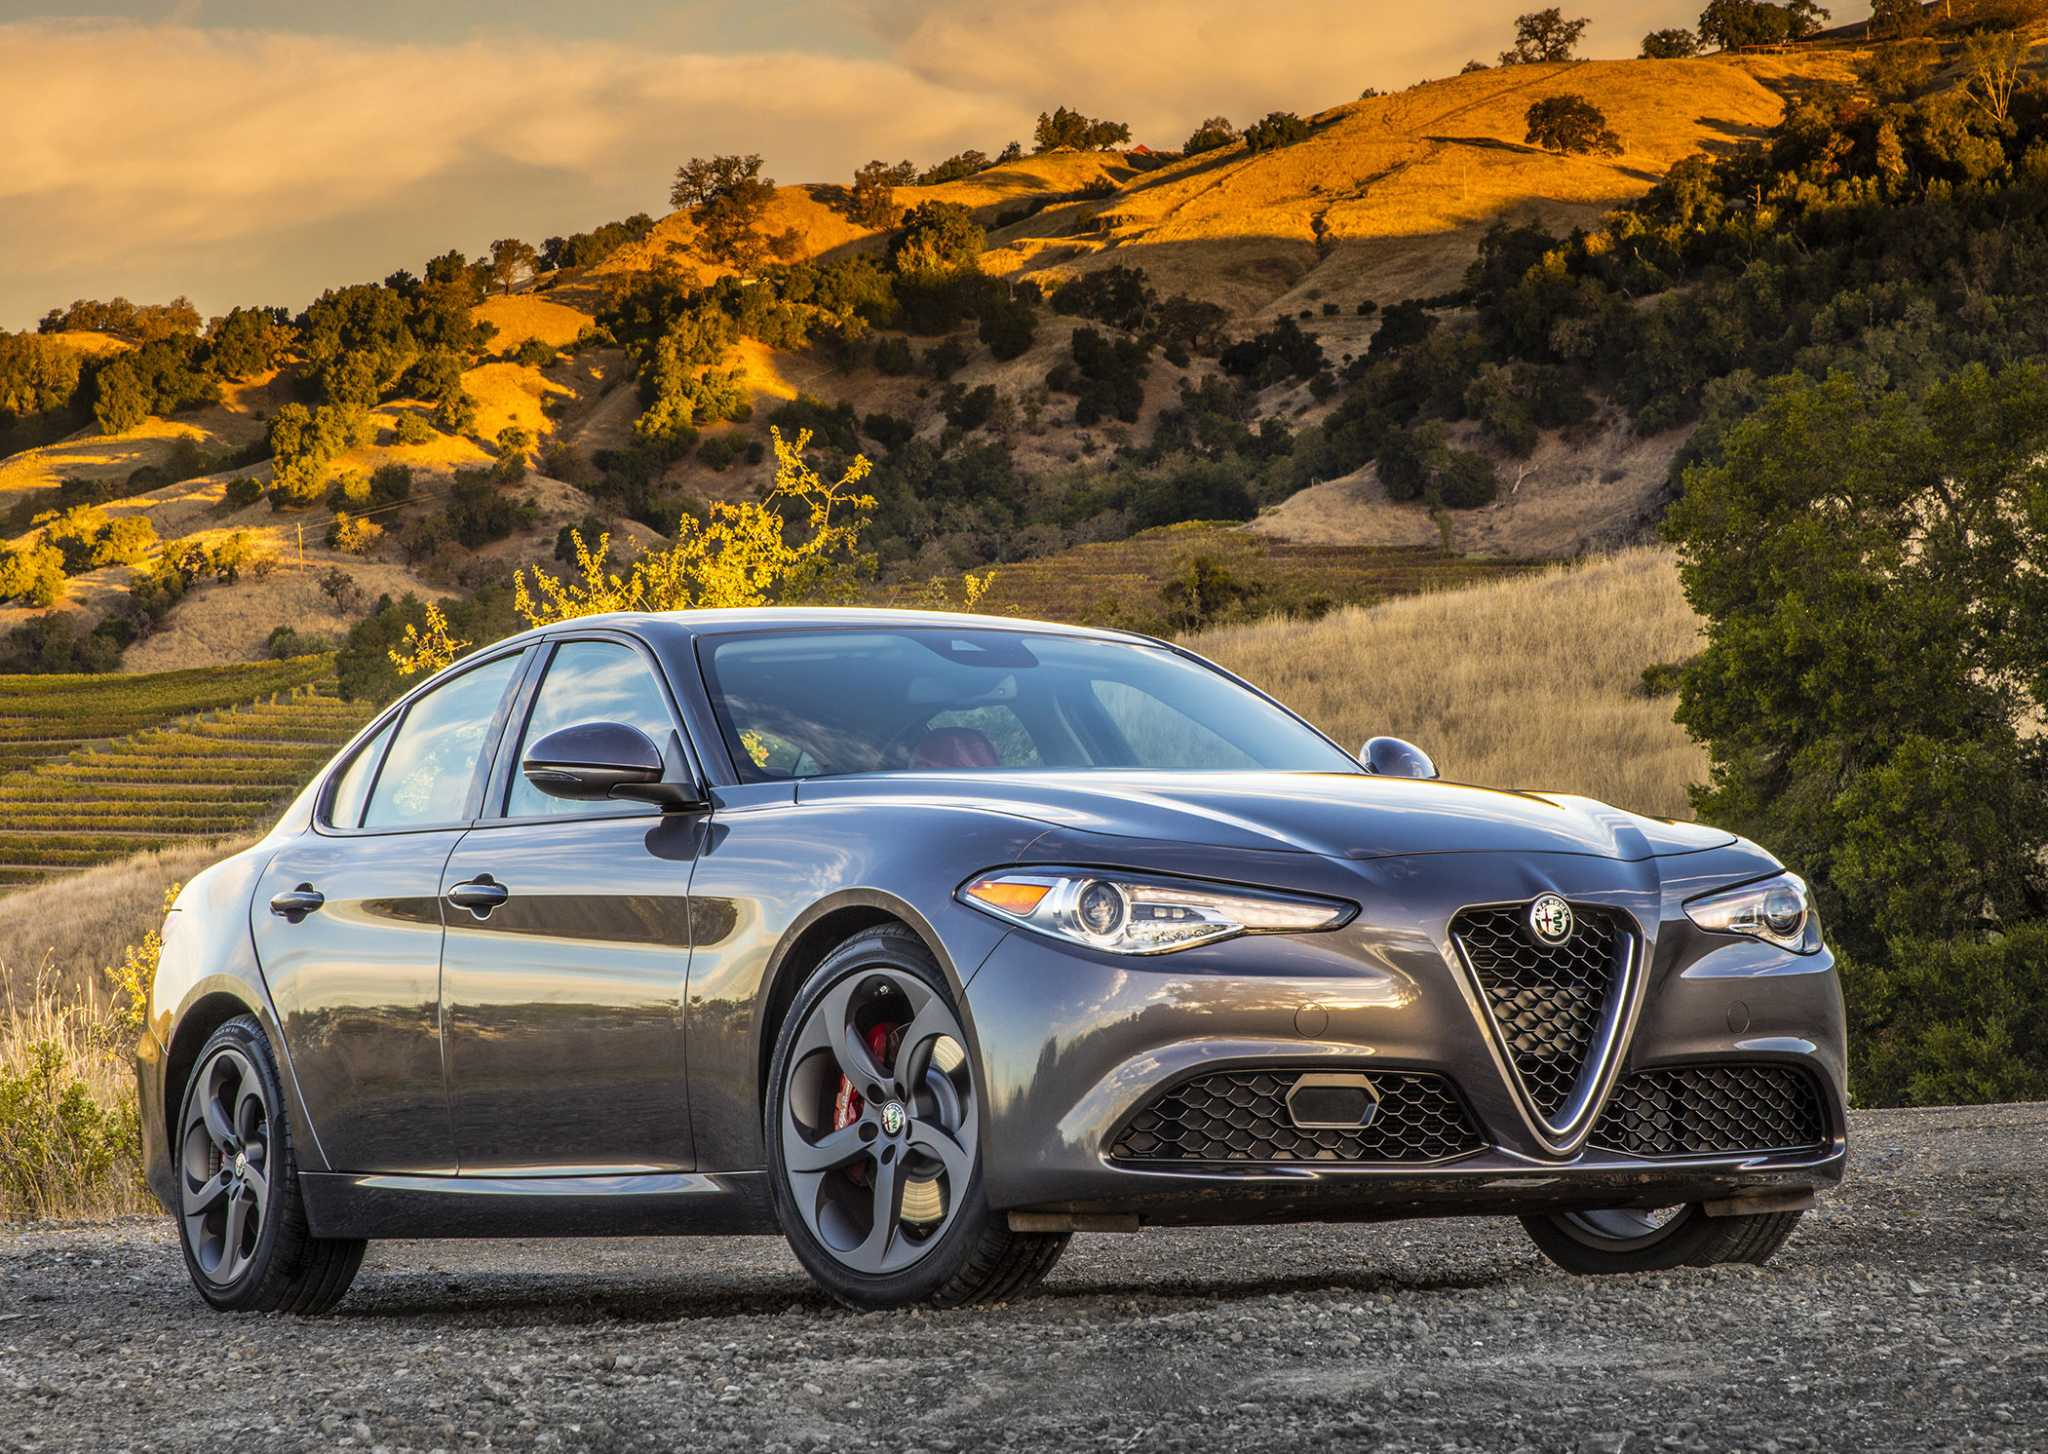 Alfa rolls out affordable sports sedan Giulia for 2017